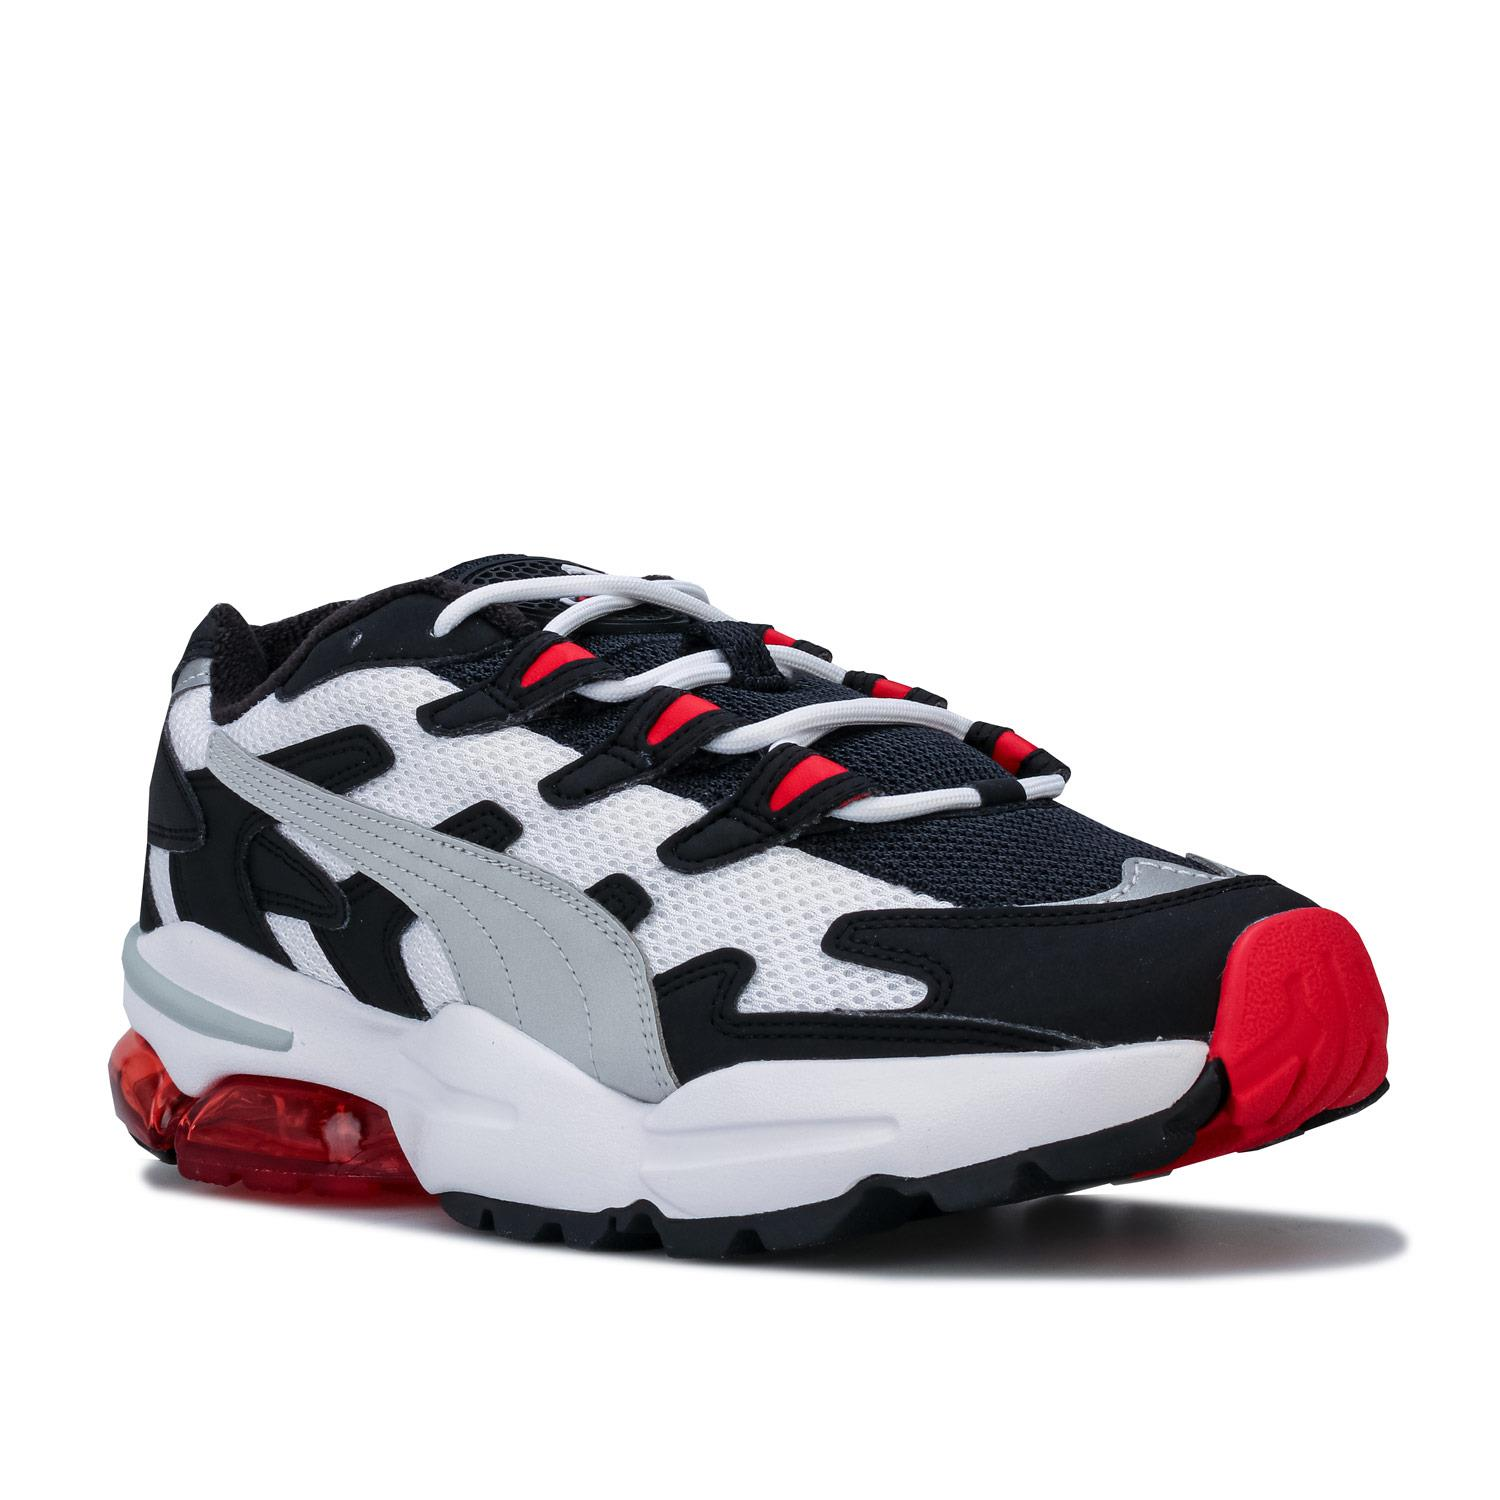 Mens-Puma-Cell-Alien-OG-Trainers-in-Blue-Green-Black-Red-Blue-and-Yellow thumbnail 3